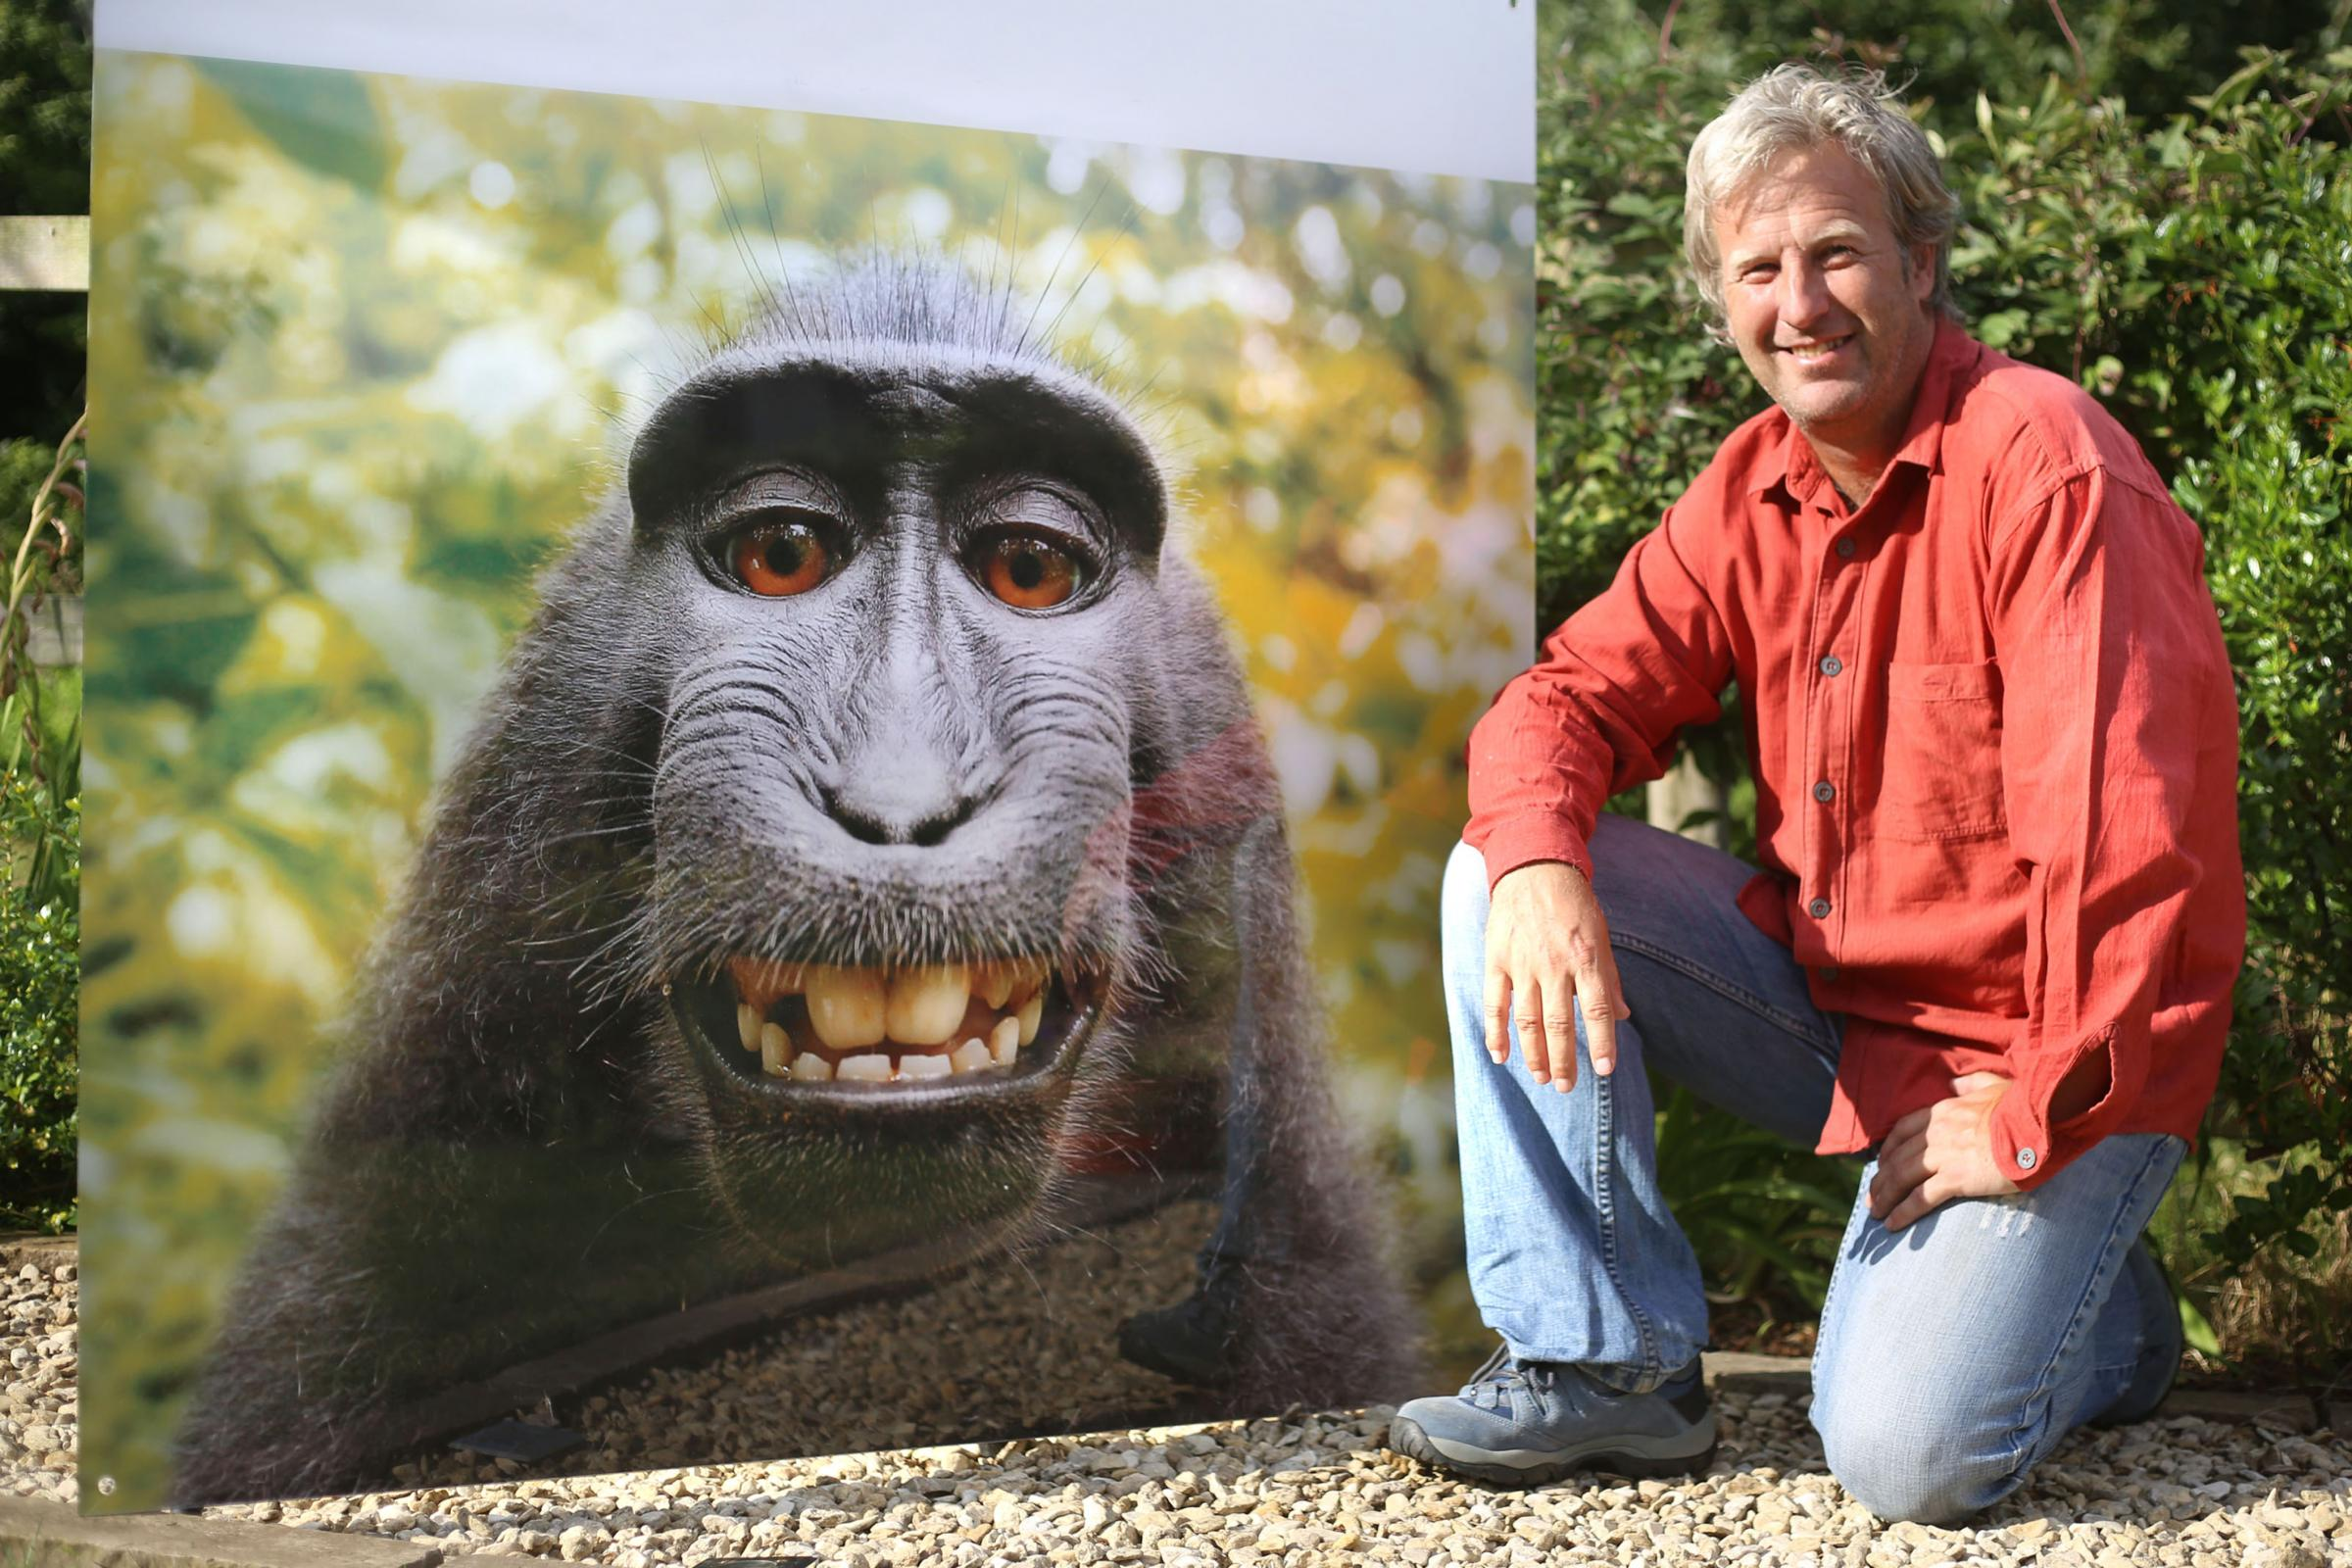 David Slater, a photographer who is based in Chepstow, and the monkey selfie